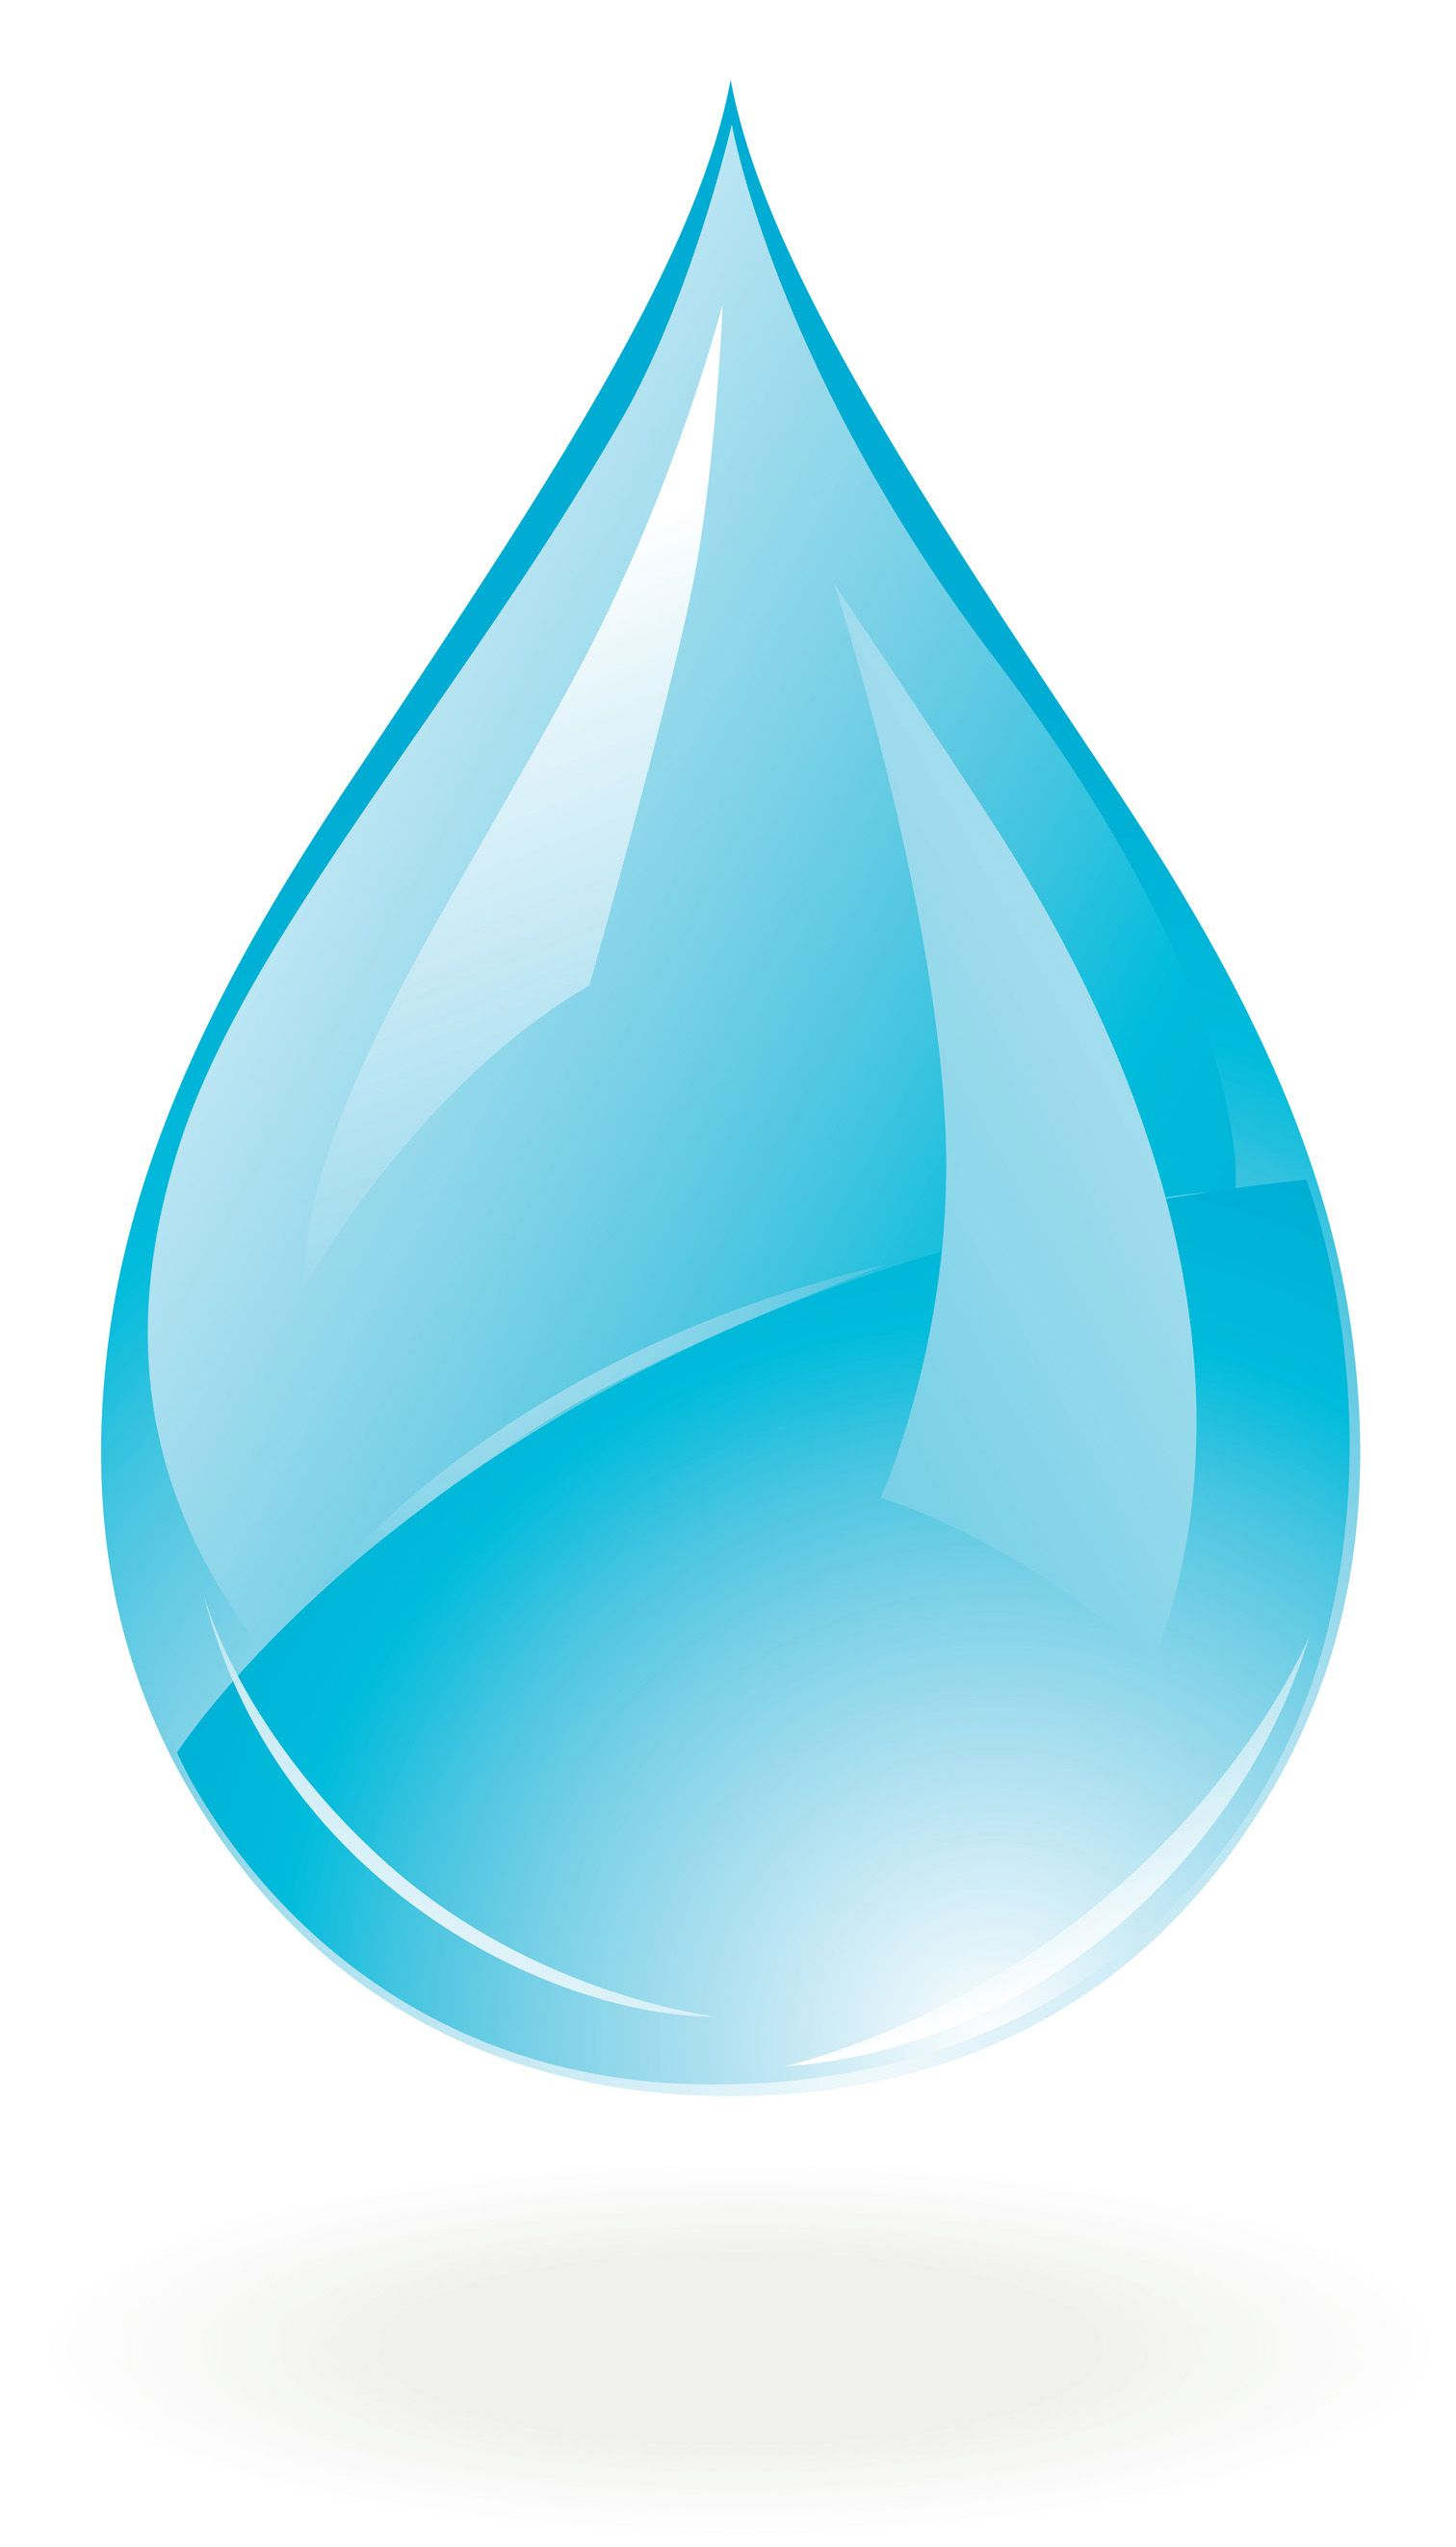 Water clipart drop. Psd planning makes me